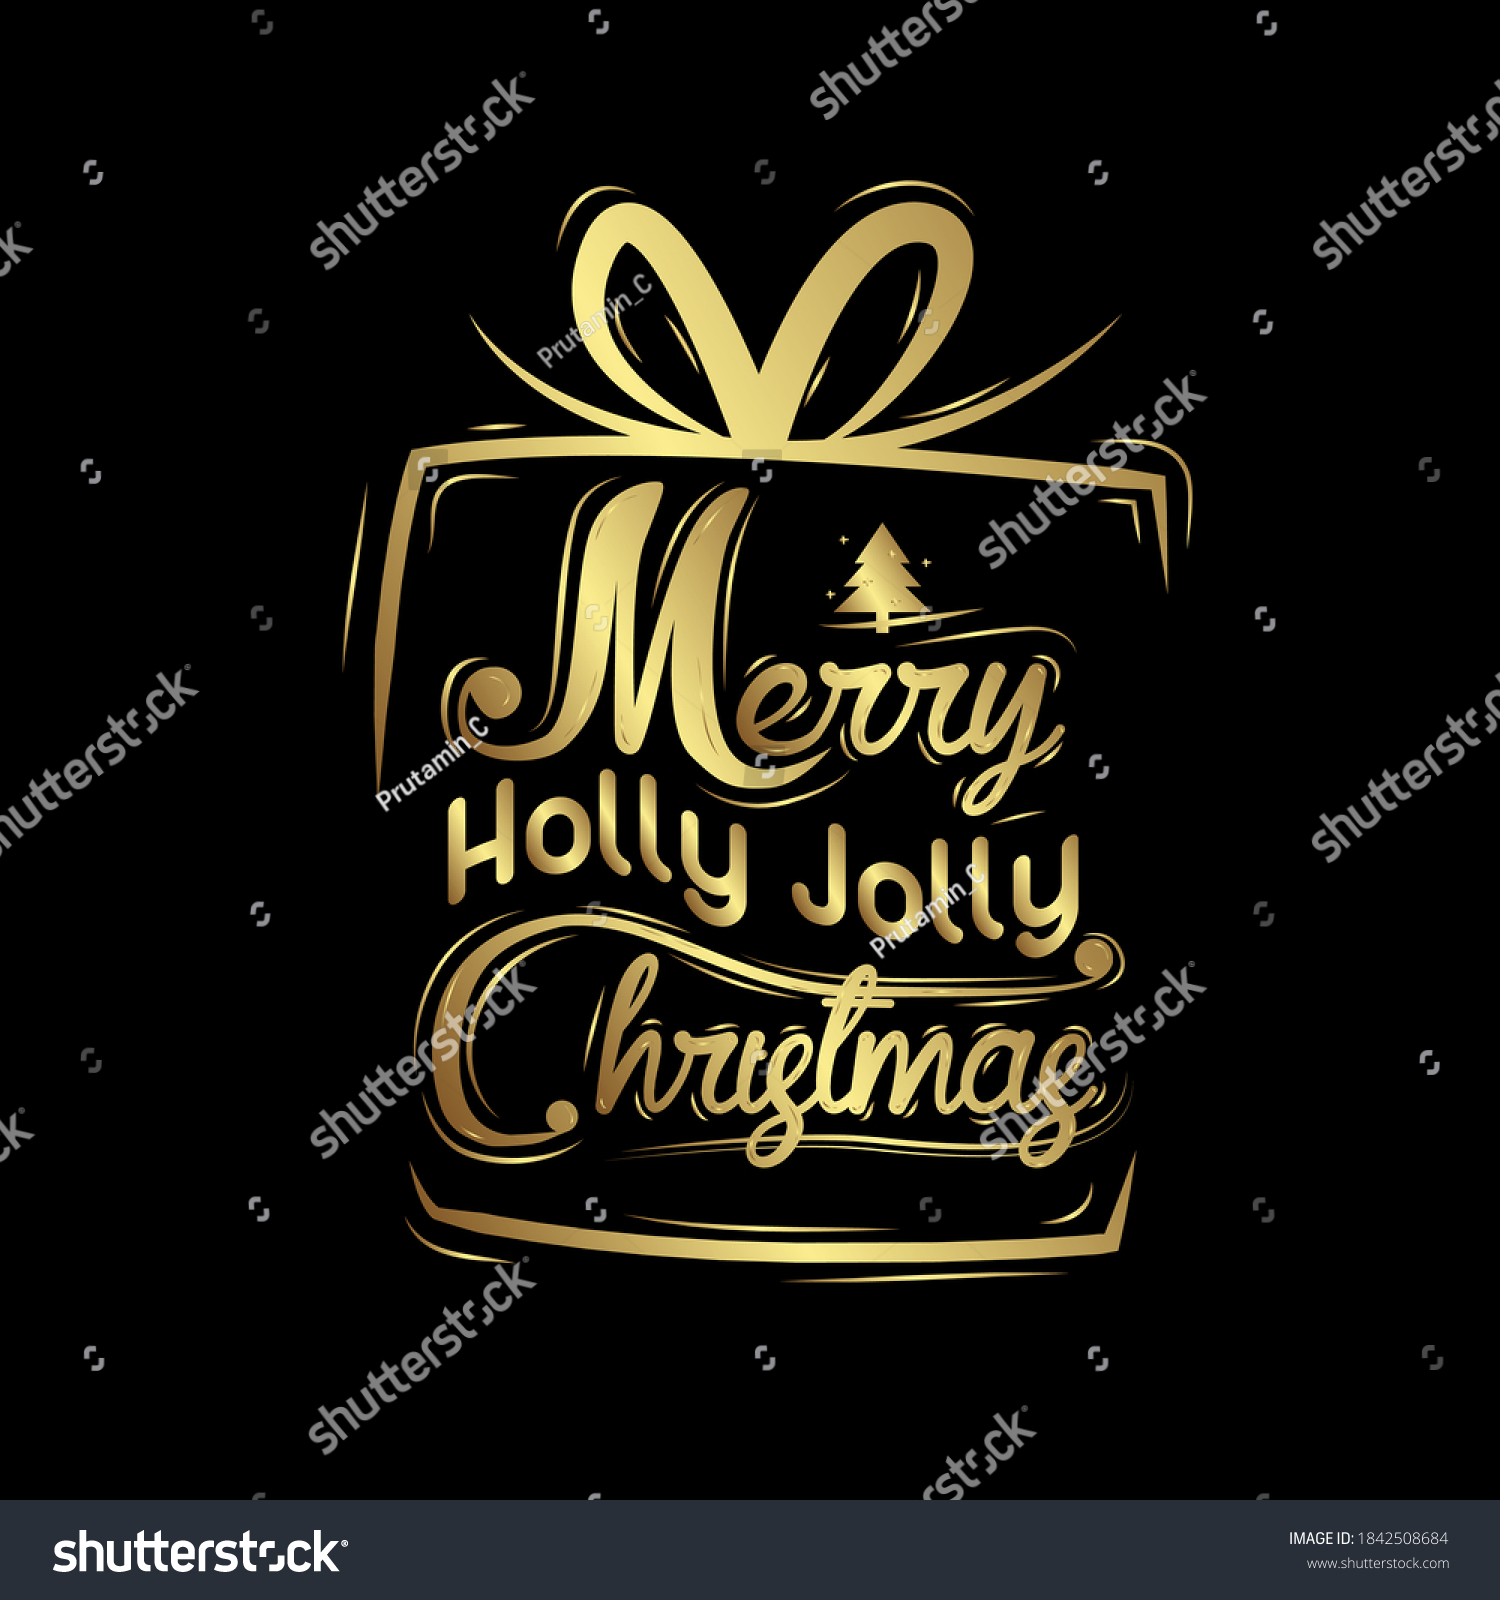 merry christmas, Vintage Background With Beautiful Typography and confetti Elements. good use for holiday and new year event